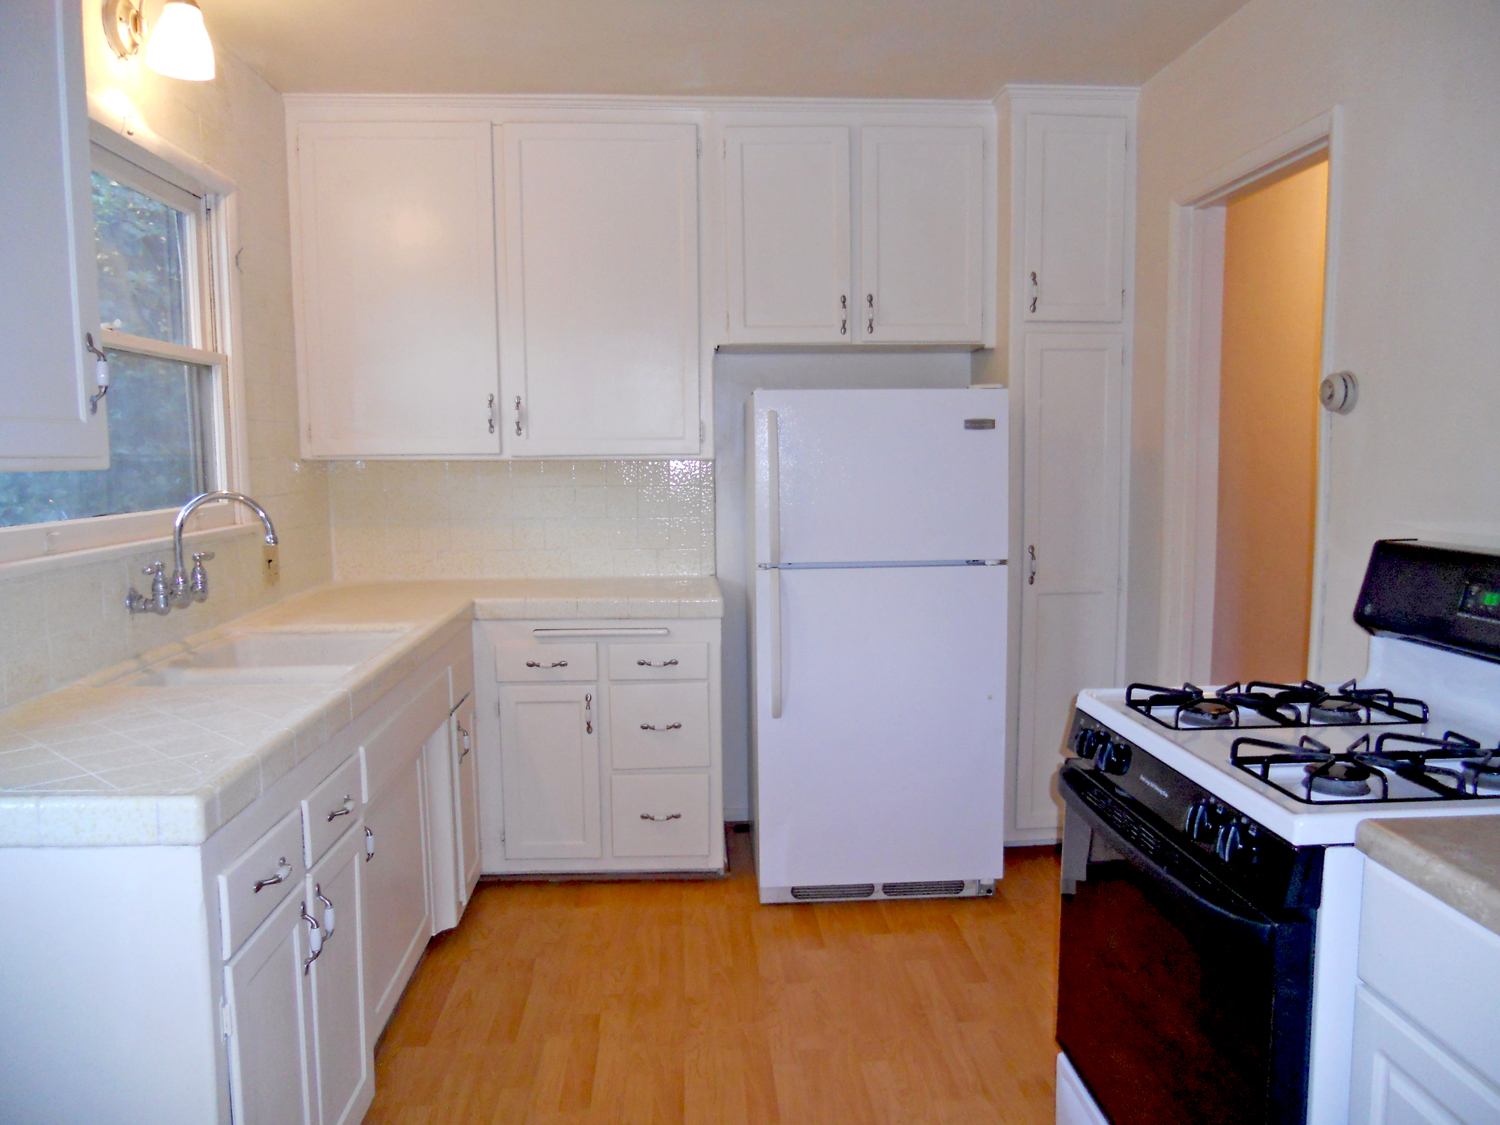 Lovely kitchen with tiled counter tops, new gas stove, and refrigerator stays too!